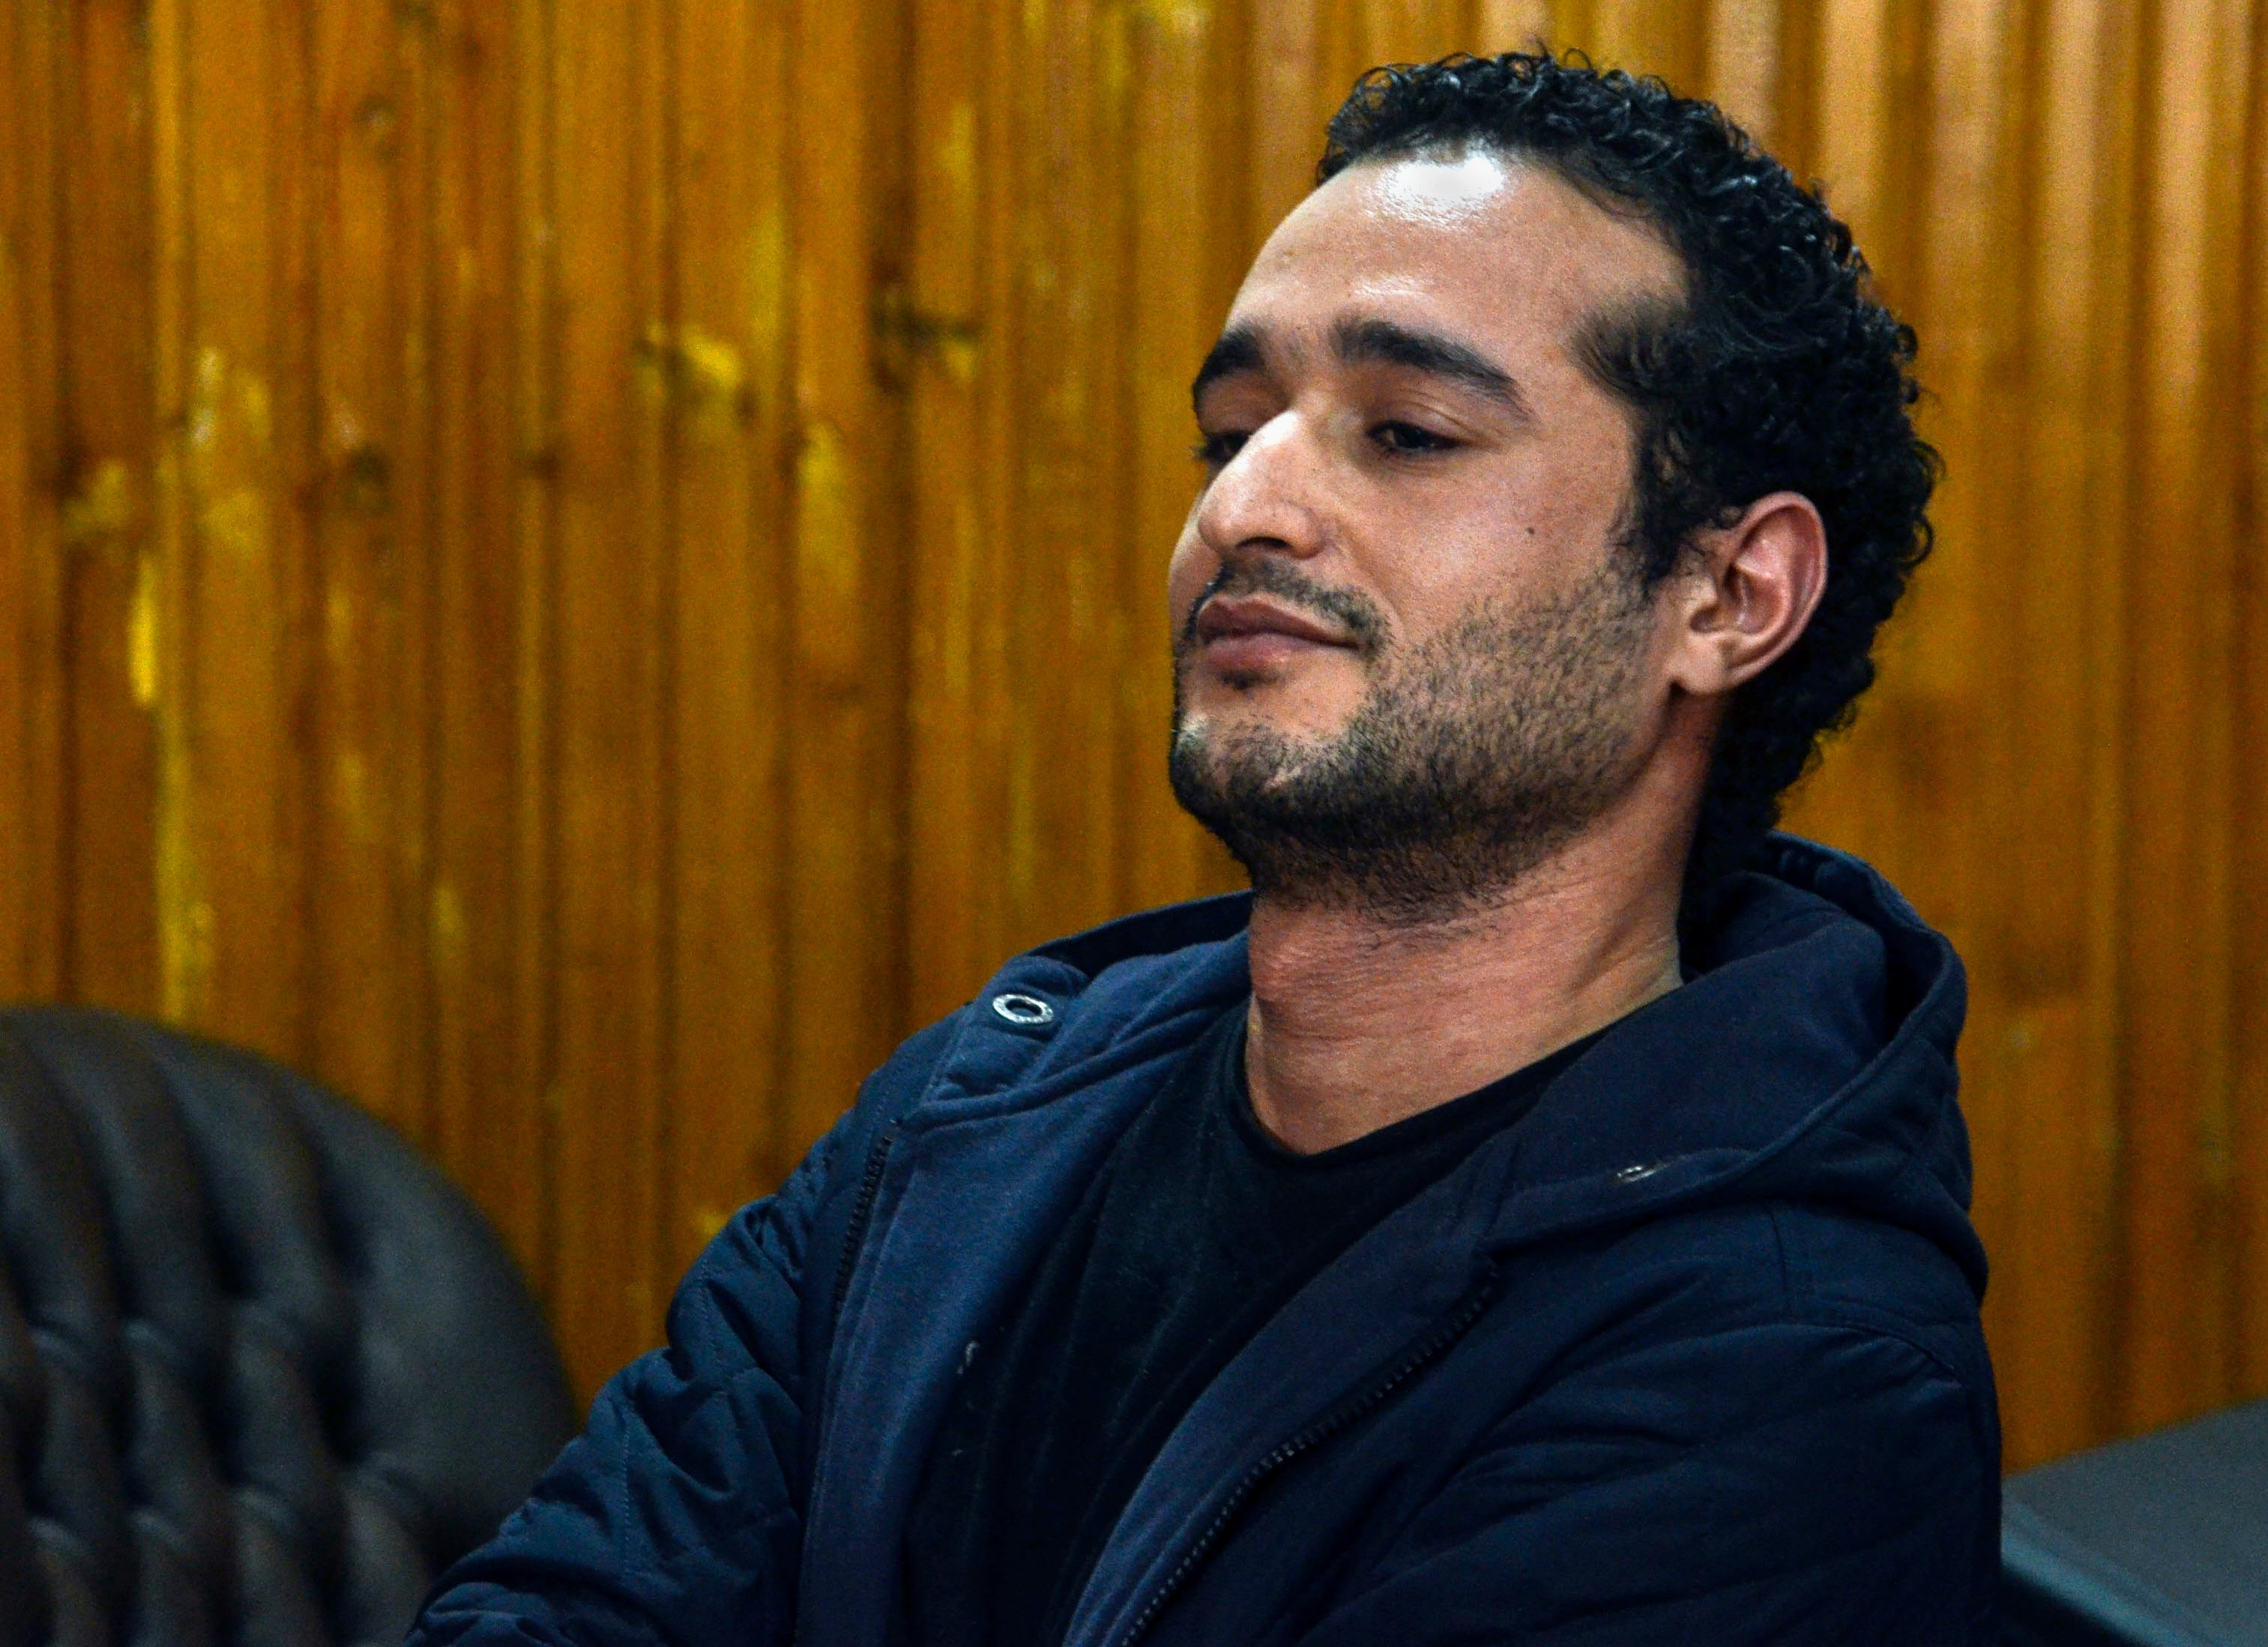 Ahmed Douma, Egypt's Repeatedly Jailed Activist